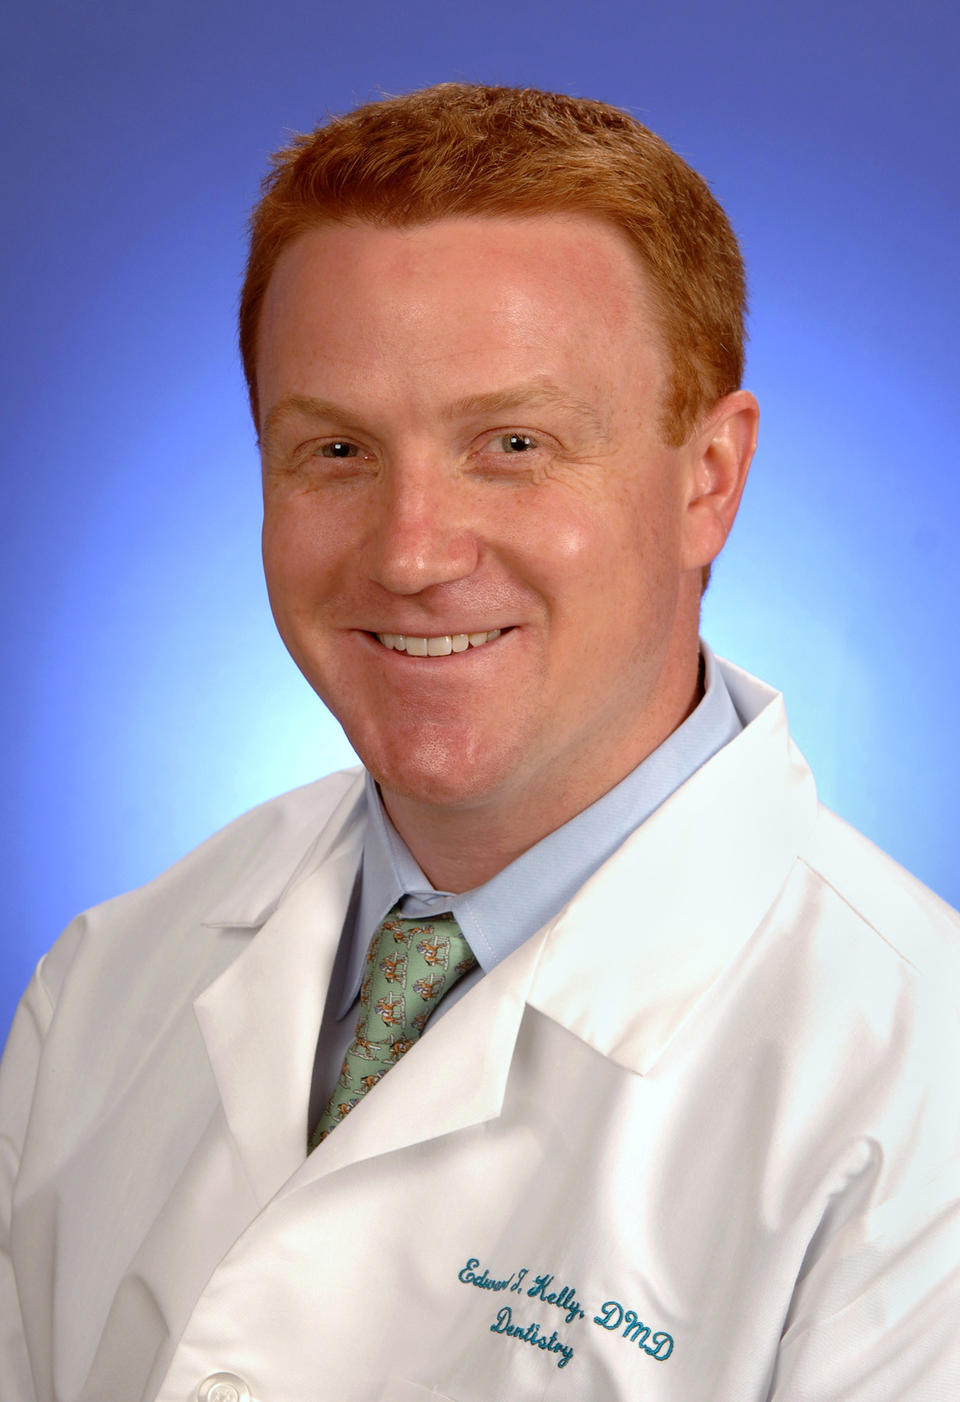 Edward T. Kelly, IV, D.M.D., of Manchester, a specialist in hospital dentistry, has joined the medical staff of Saint Francis Hospital and Medical Center as assistant program director, General Practice Residency in Dentistry.